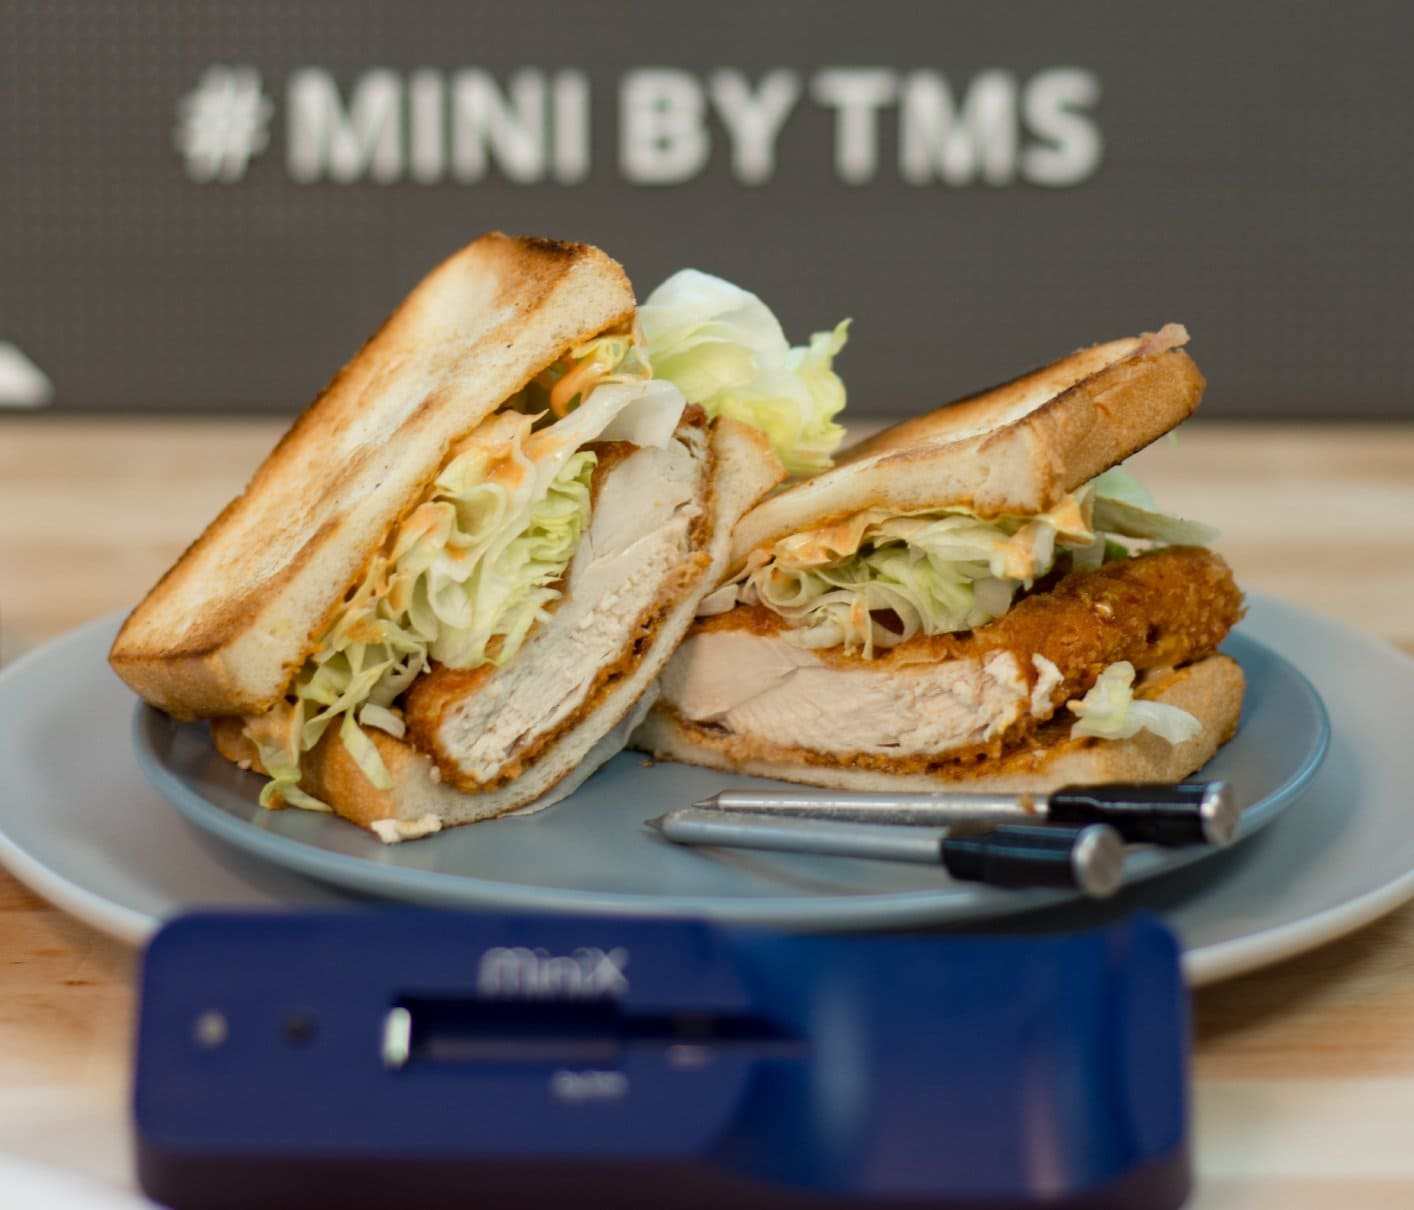 Chicken Katsu Sandwich using Mini by TMS